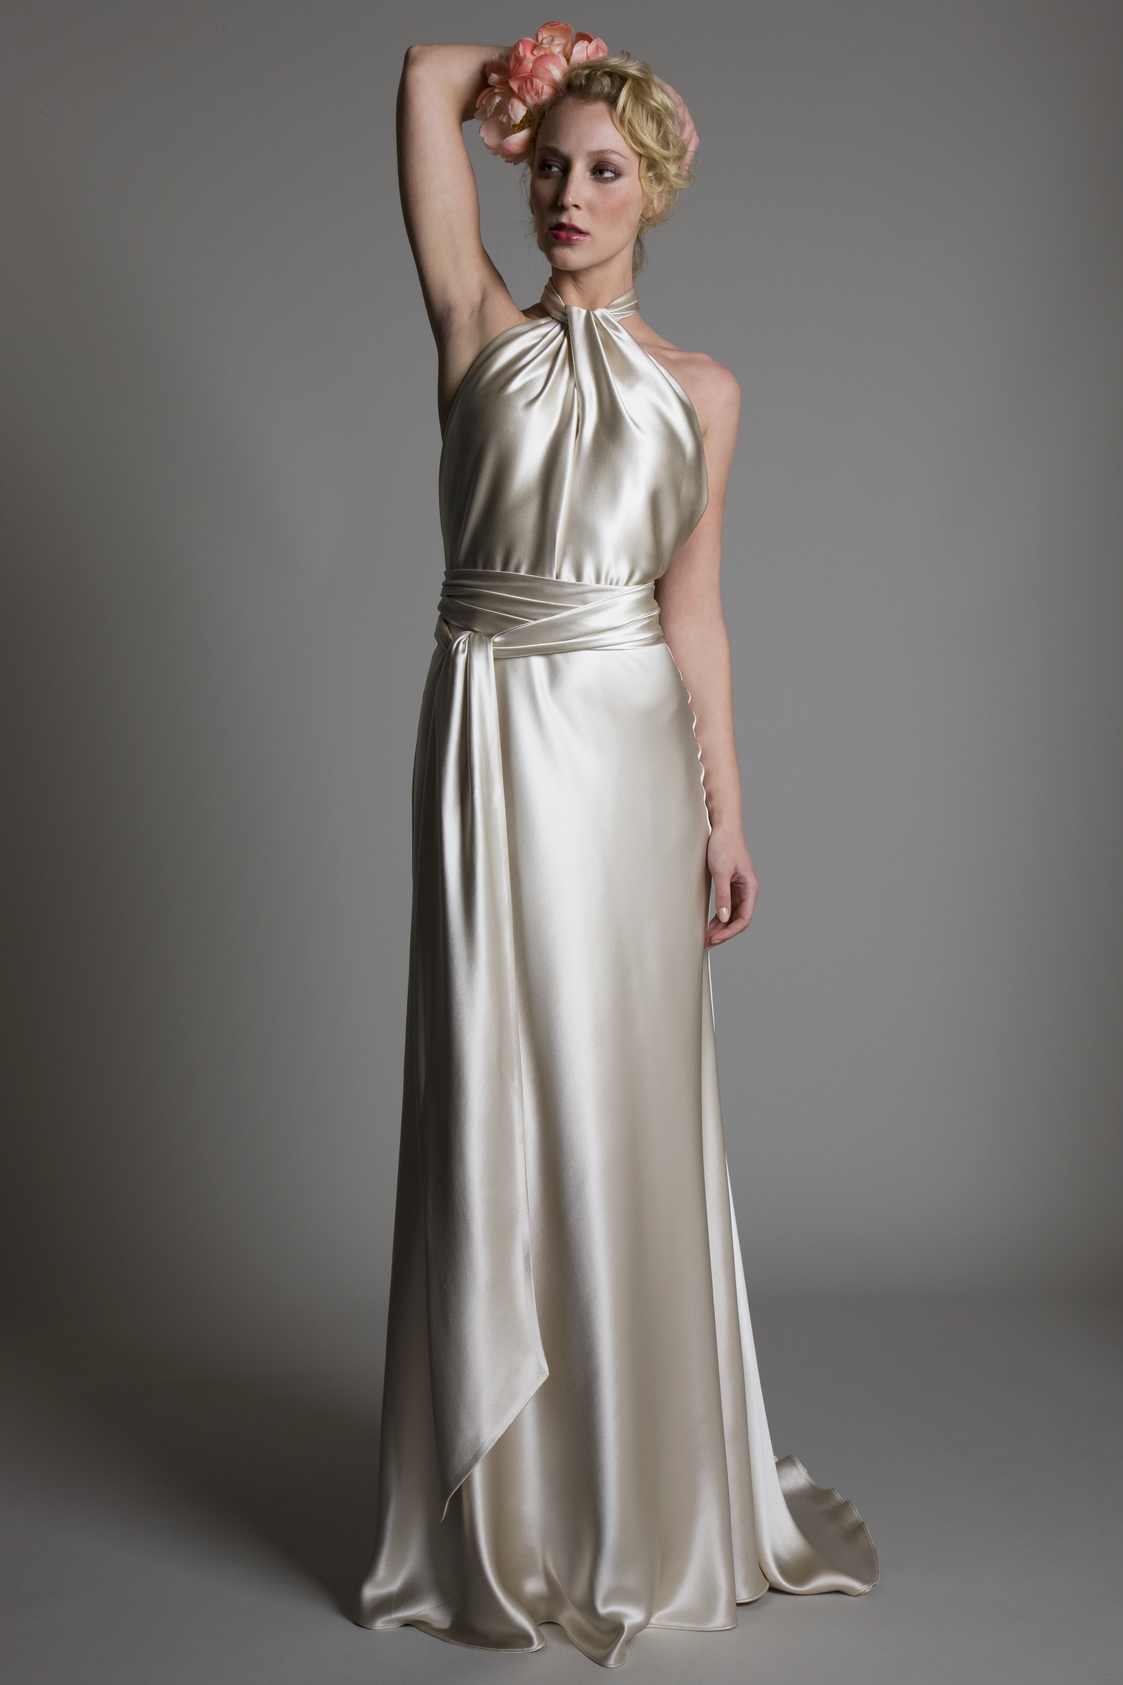 Claudia satin halter neck bridal wedding dress with satin belt detail by Halfpenny London